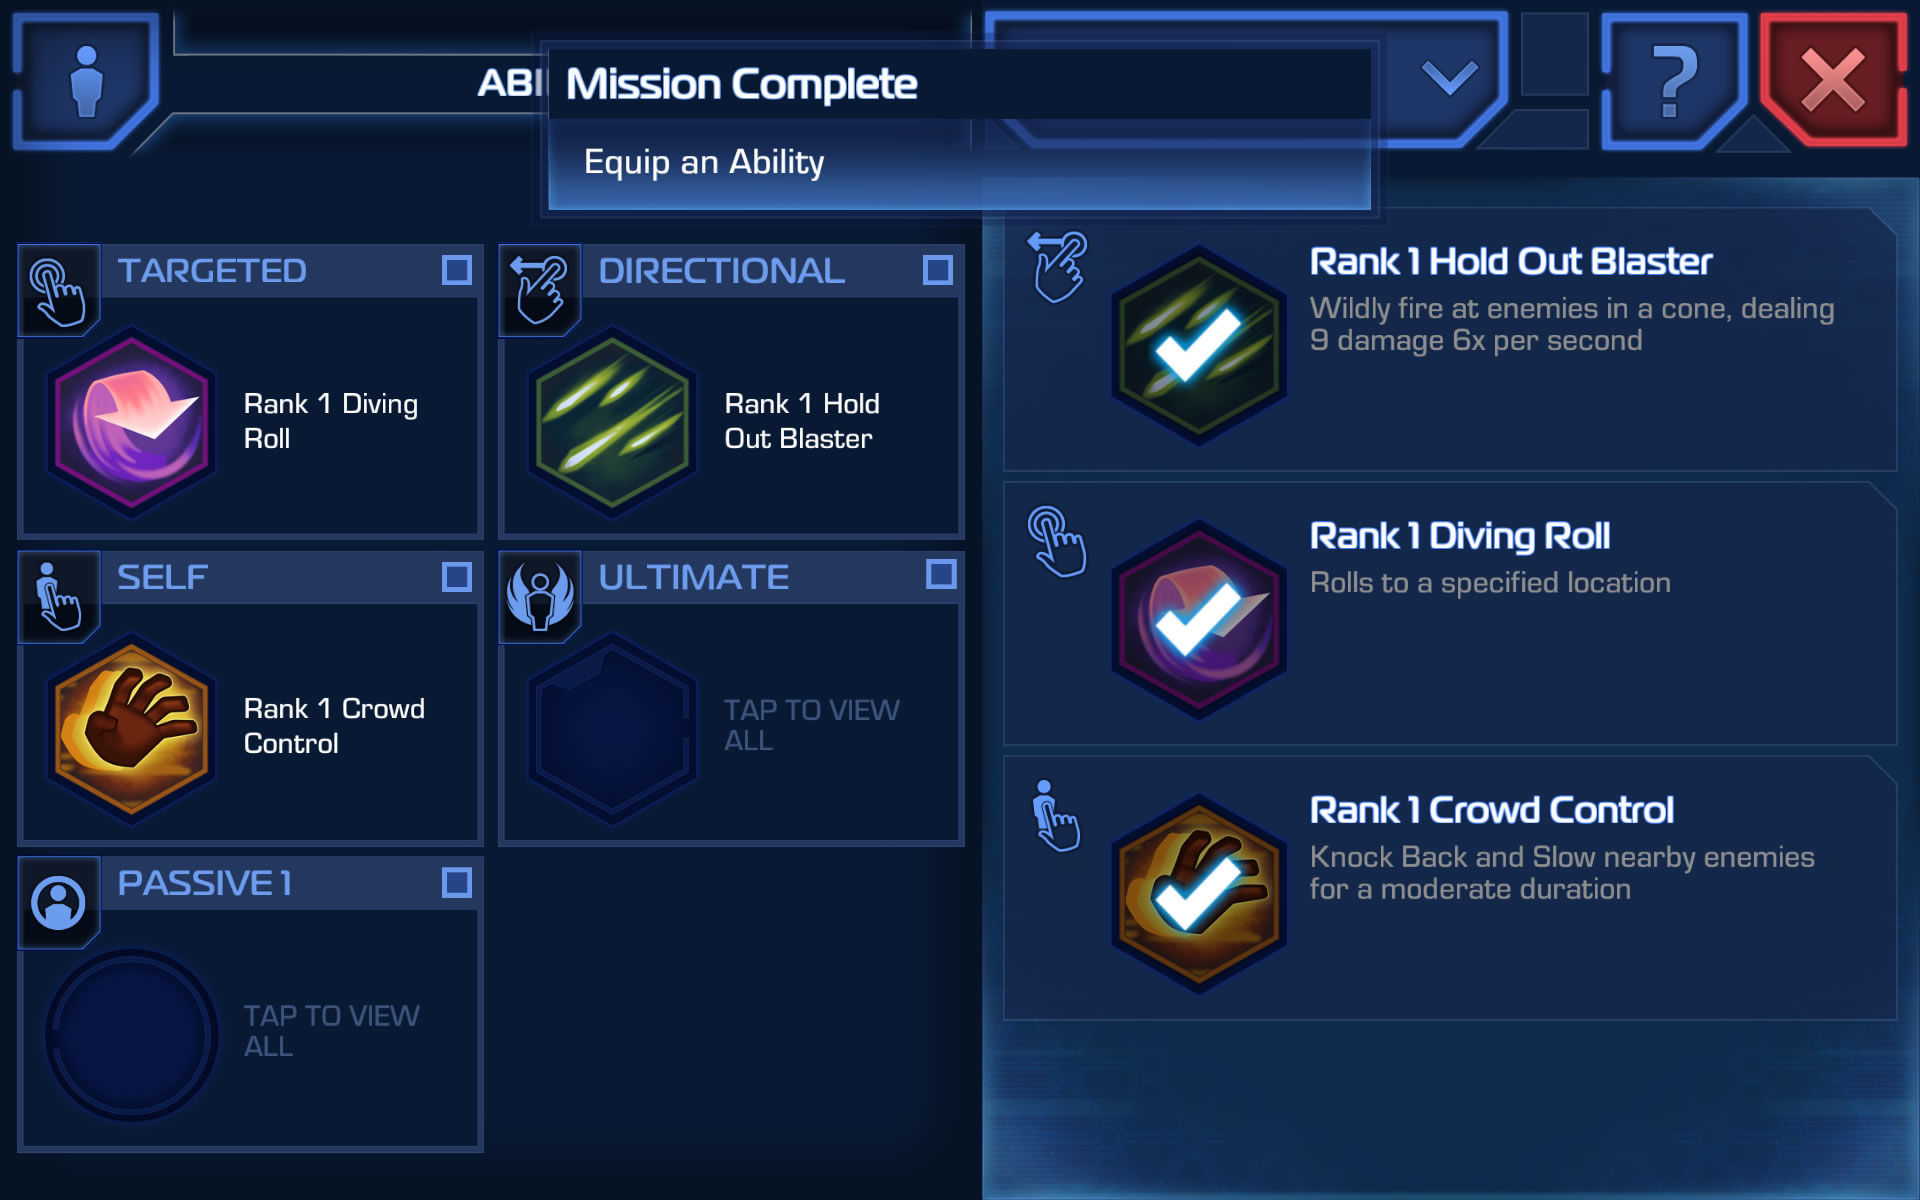 Star Wars: Uprising Android Ability equipment screen